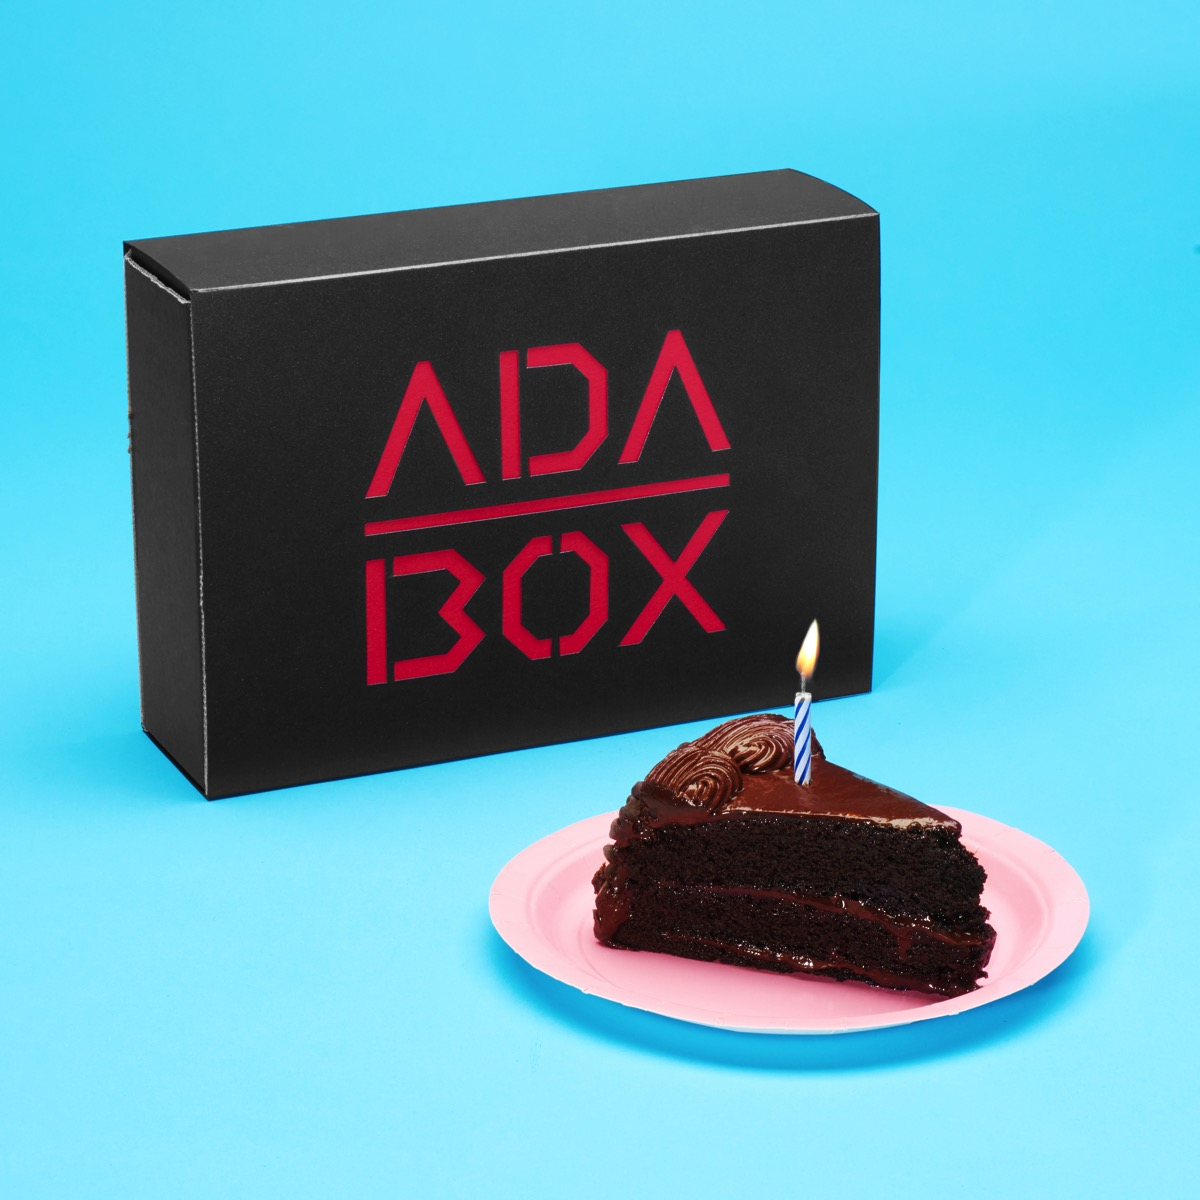 Adabox Birthday Instagram 2017 ORIG